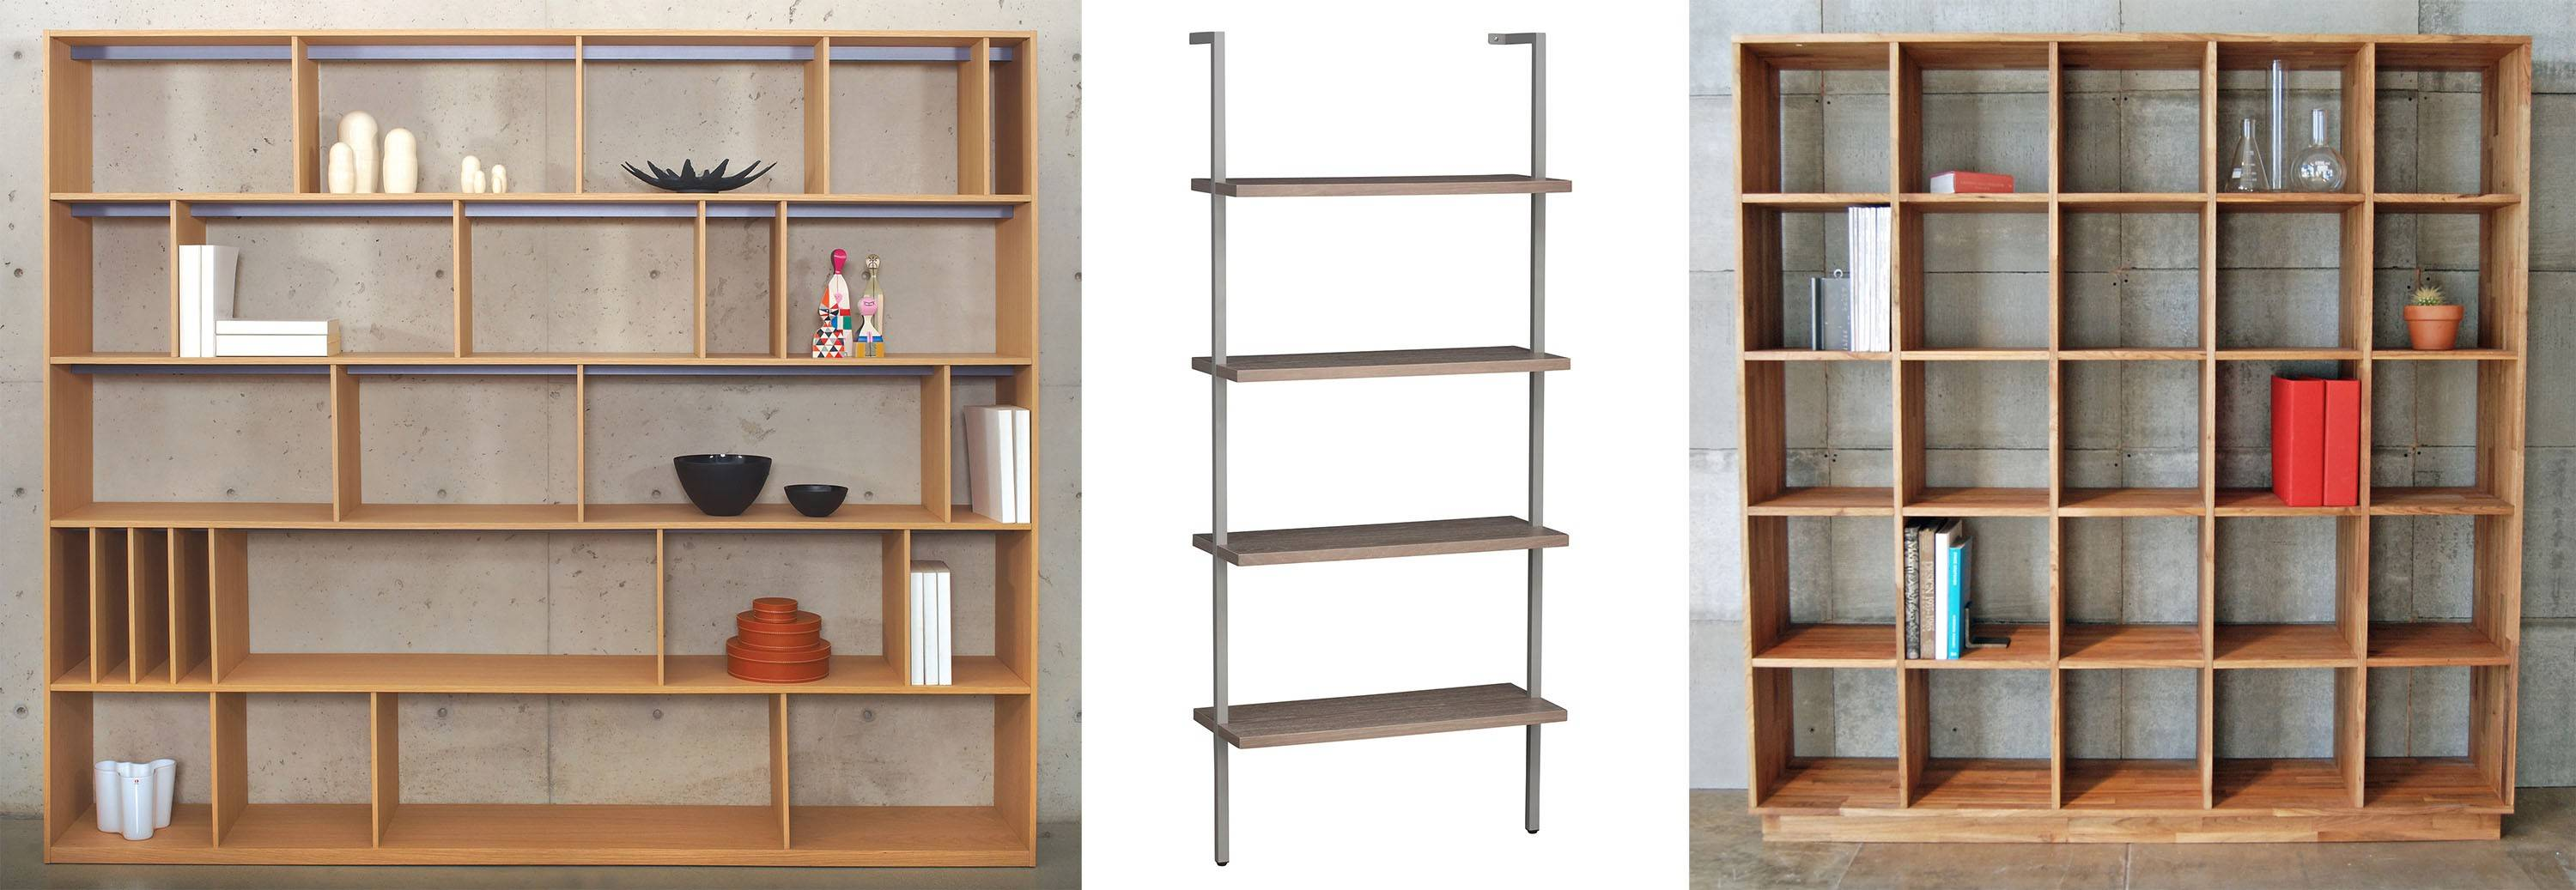 For a large collection of books, the Format open bookcase by Bensen comes in multiple sizes and finishes (left); for a tiny room, CB2's Helix taupe bookcase would be perfect (center); for a modern setting, try the LAX Series bookshelf by Mash Studios (right).